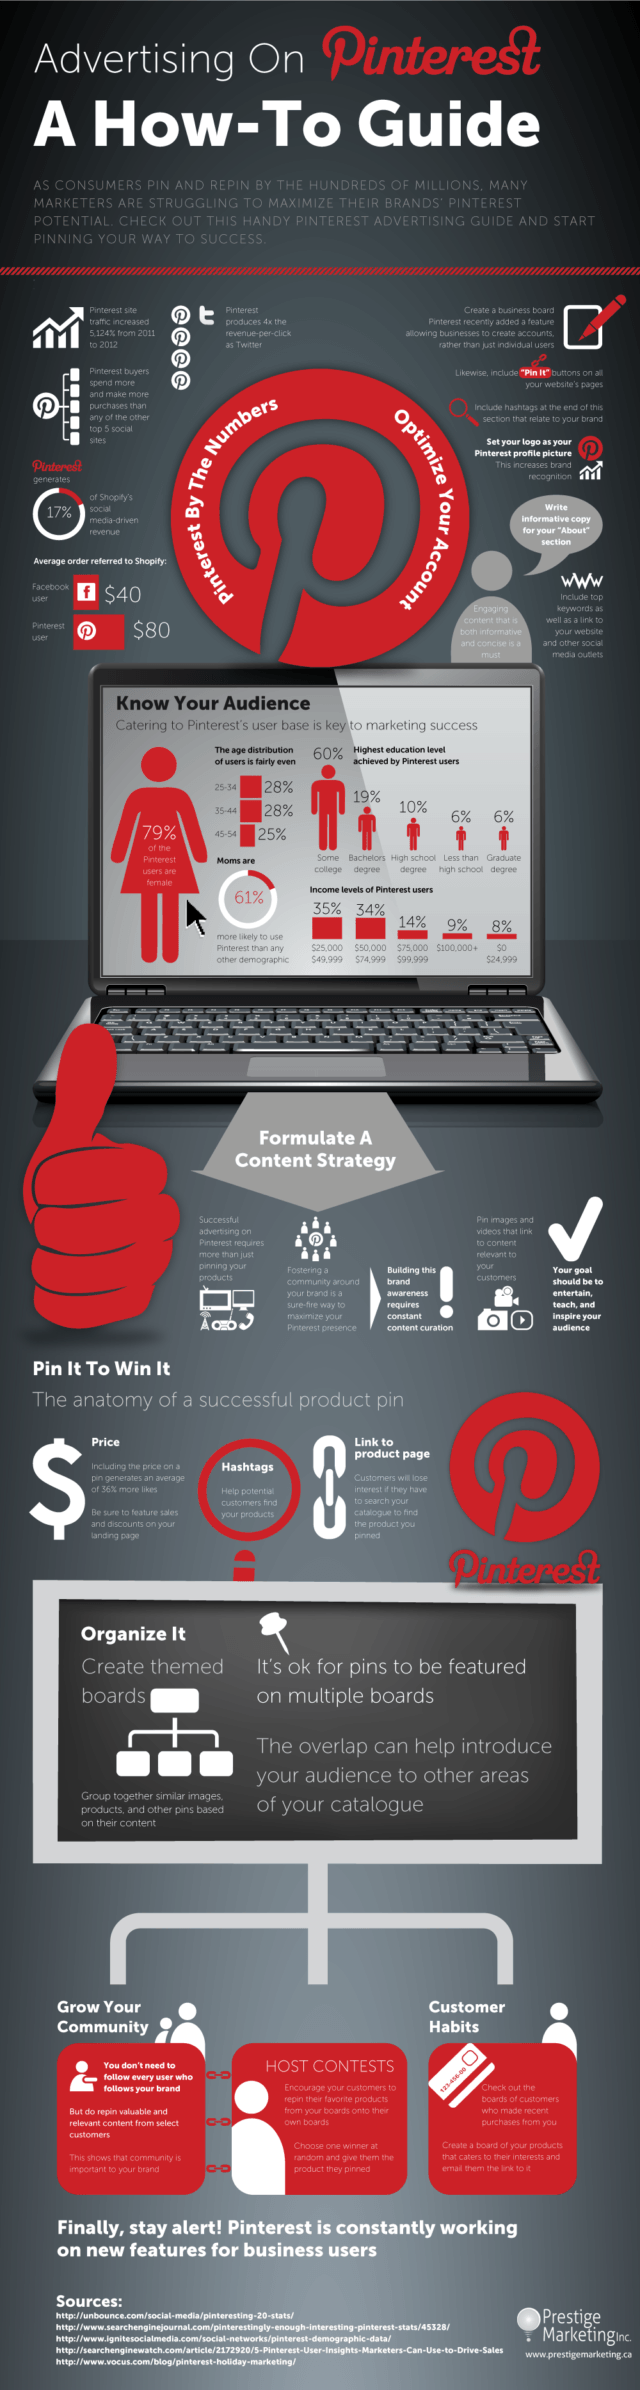 how-to-advertise-on-pinterest